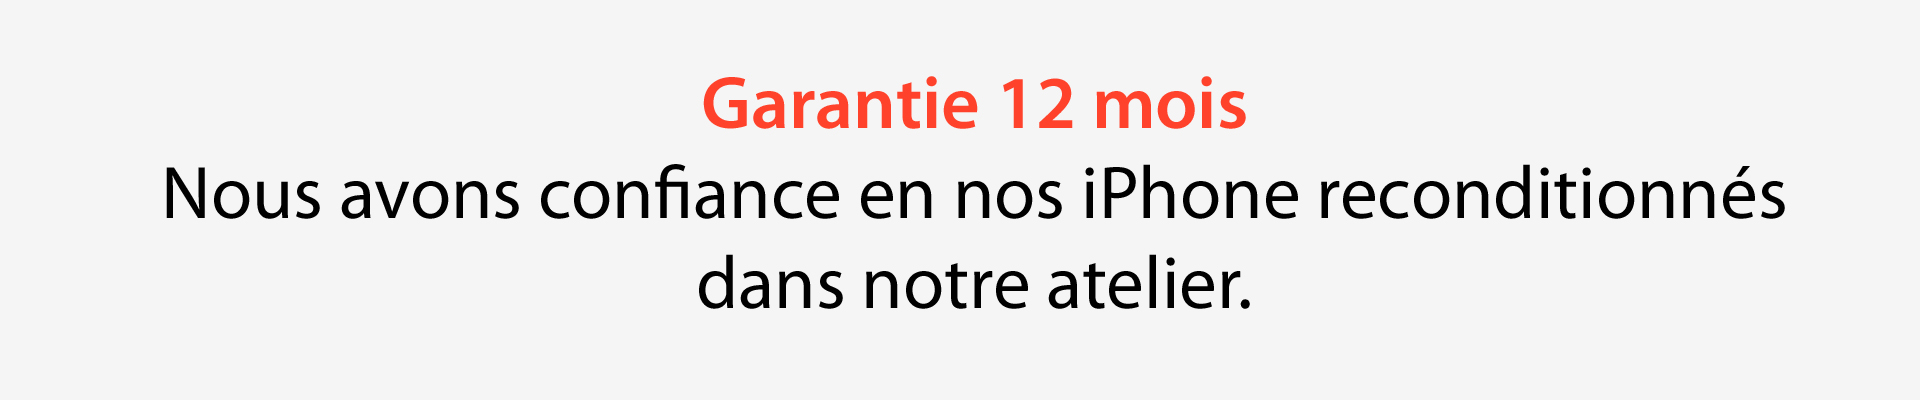 garantie 12 mois iPhone 7 plus recondtionné